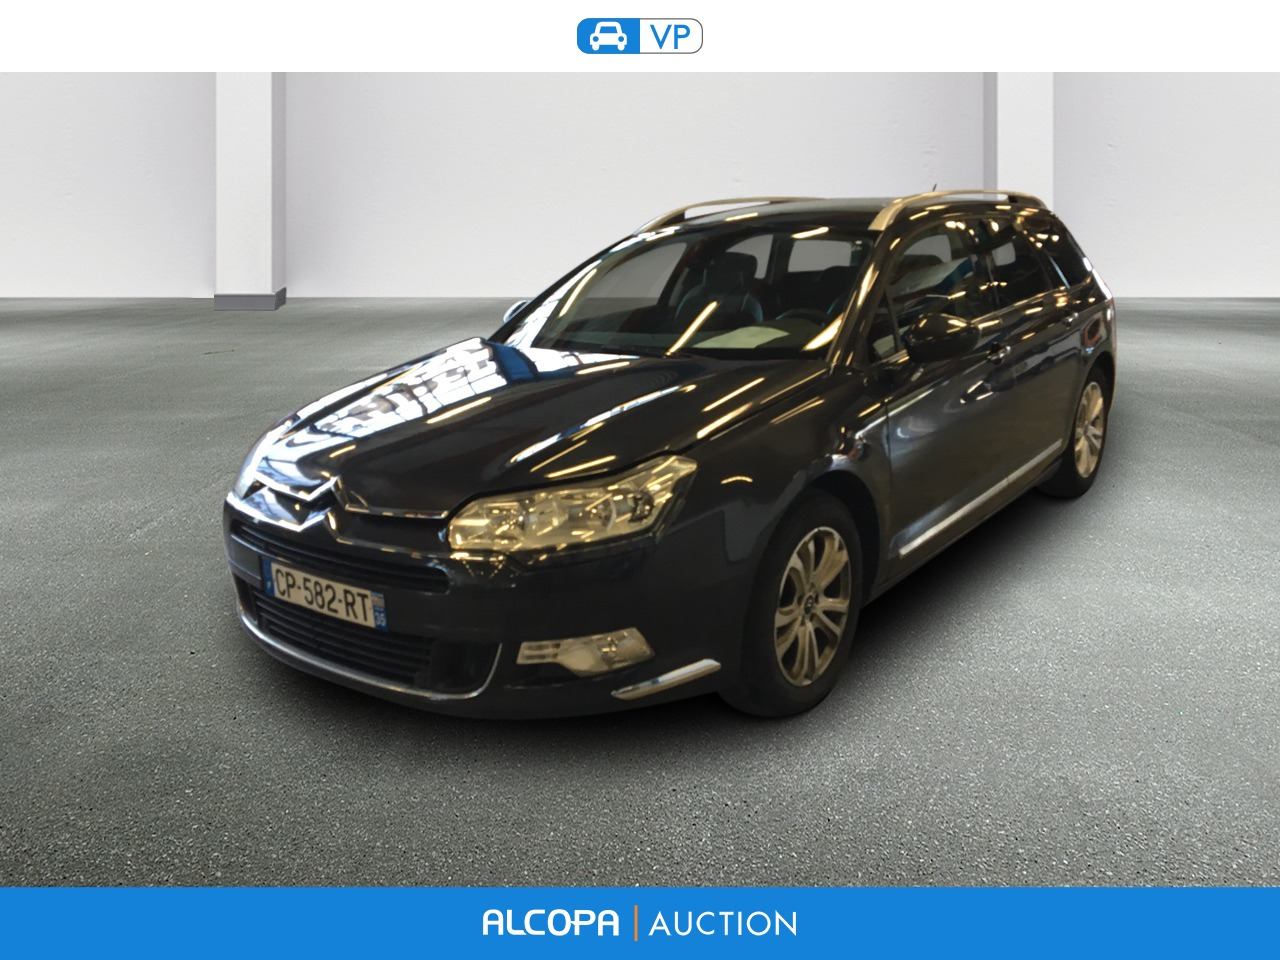 citroen c5 tourer c5 tourer hdi 160 exclusive a alcopa auction. Black Bedroom Furniture Sets. Home Design Ideas